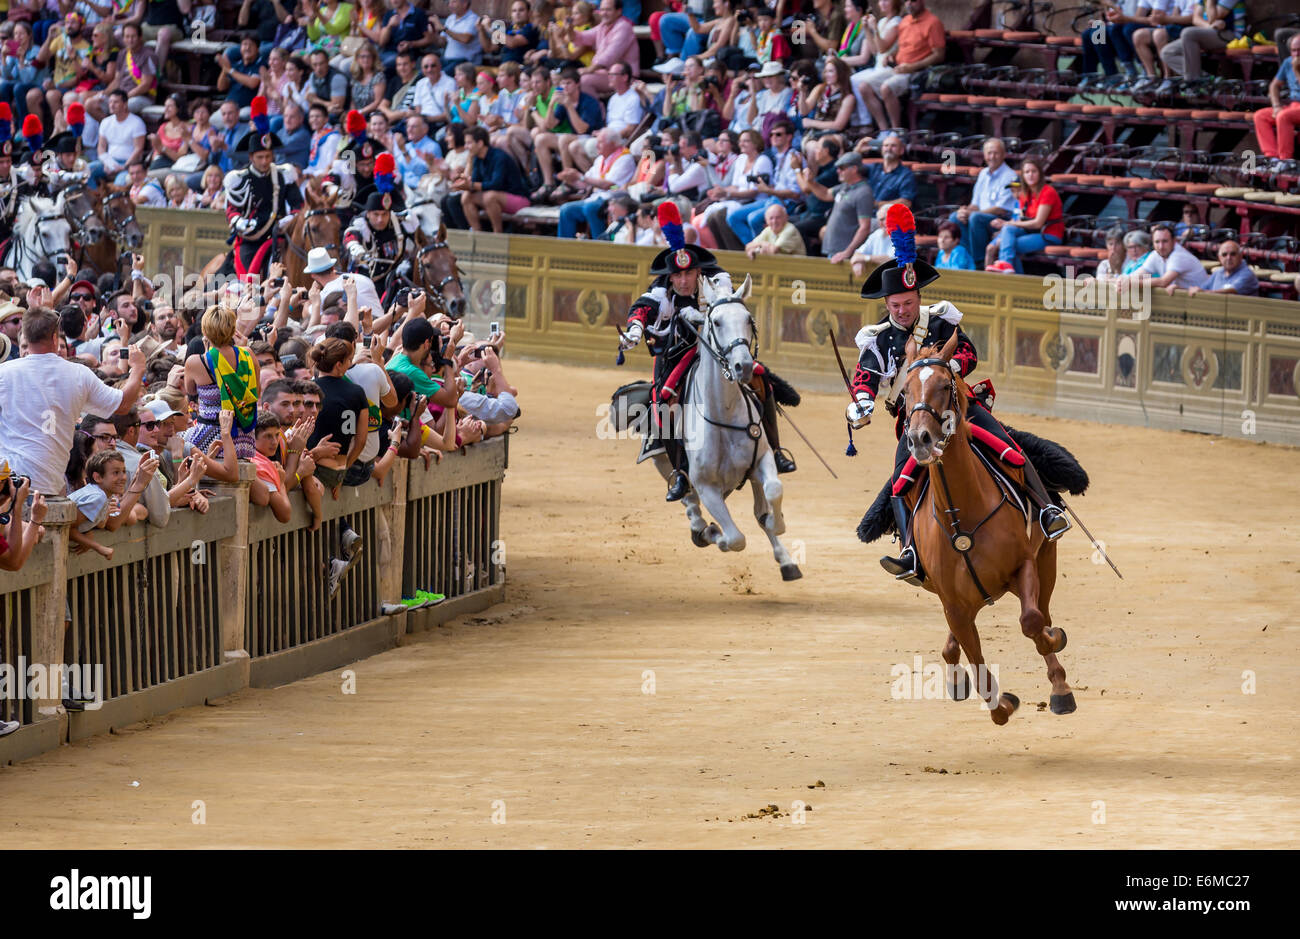 Cavalry charge by the carabinieri, Palio di Siena, historical parade, Siena, Tuscany, Italy - Stock Image